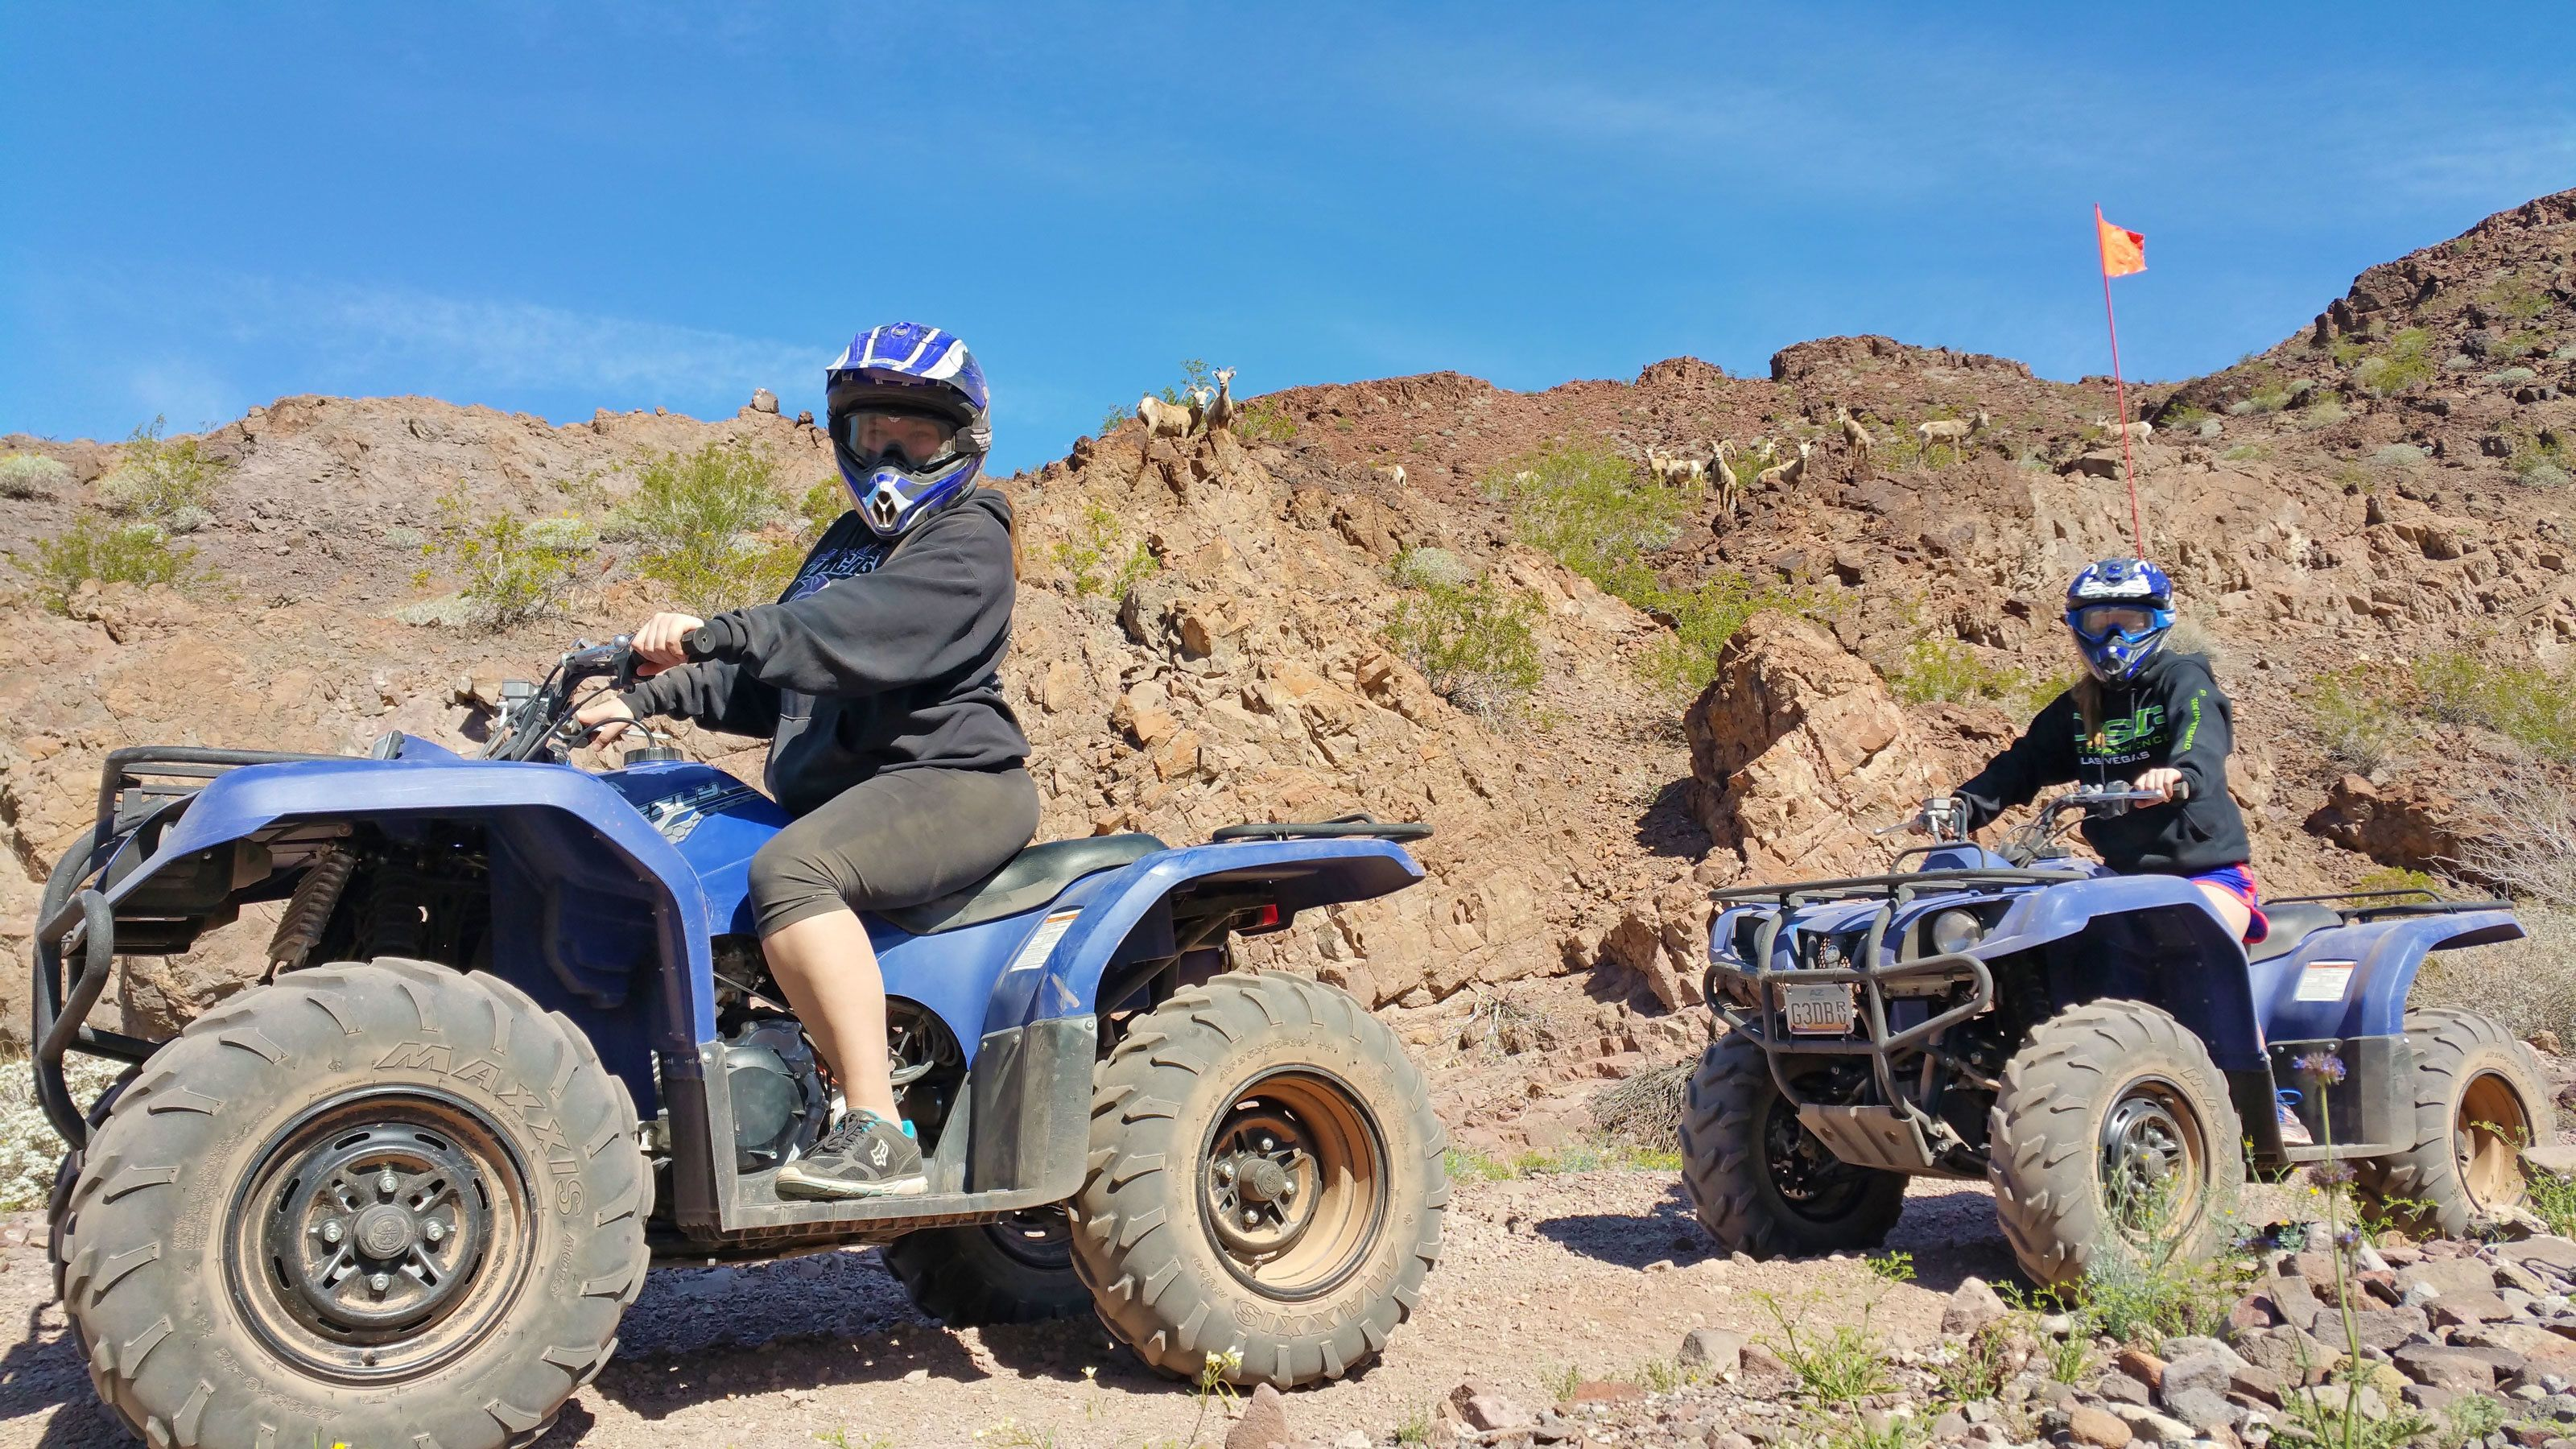 riding ATVs through the dry desert in Las Vegas